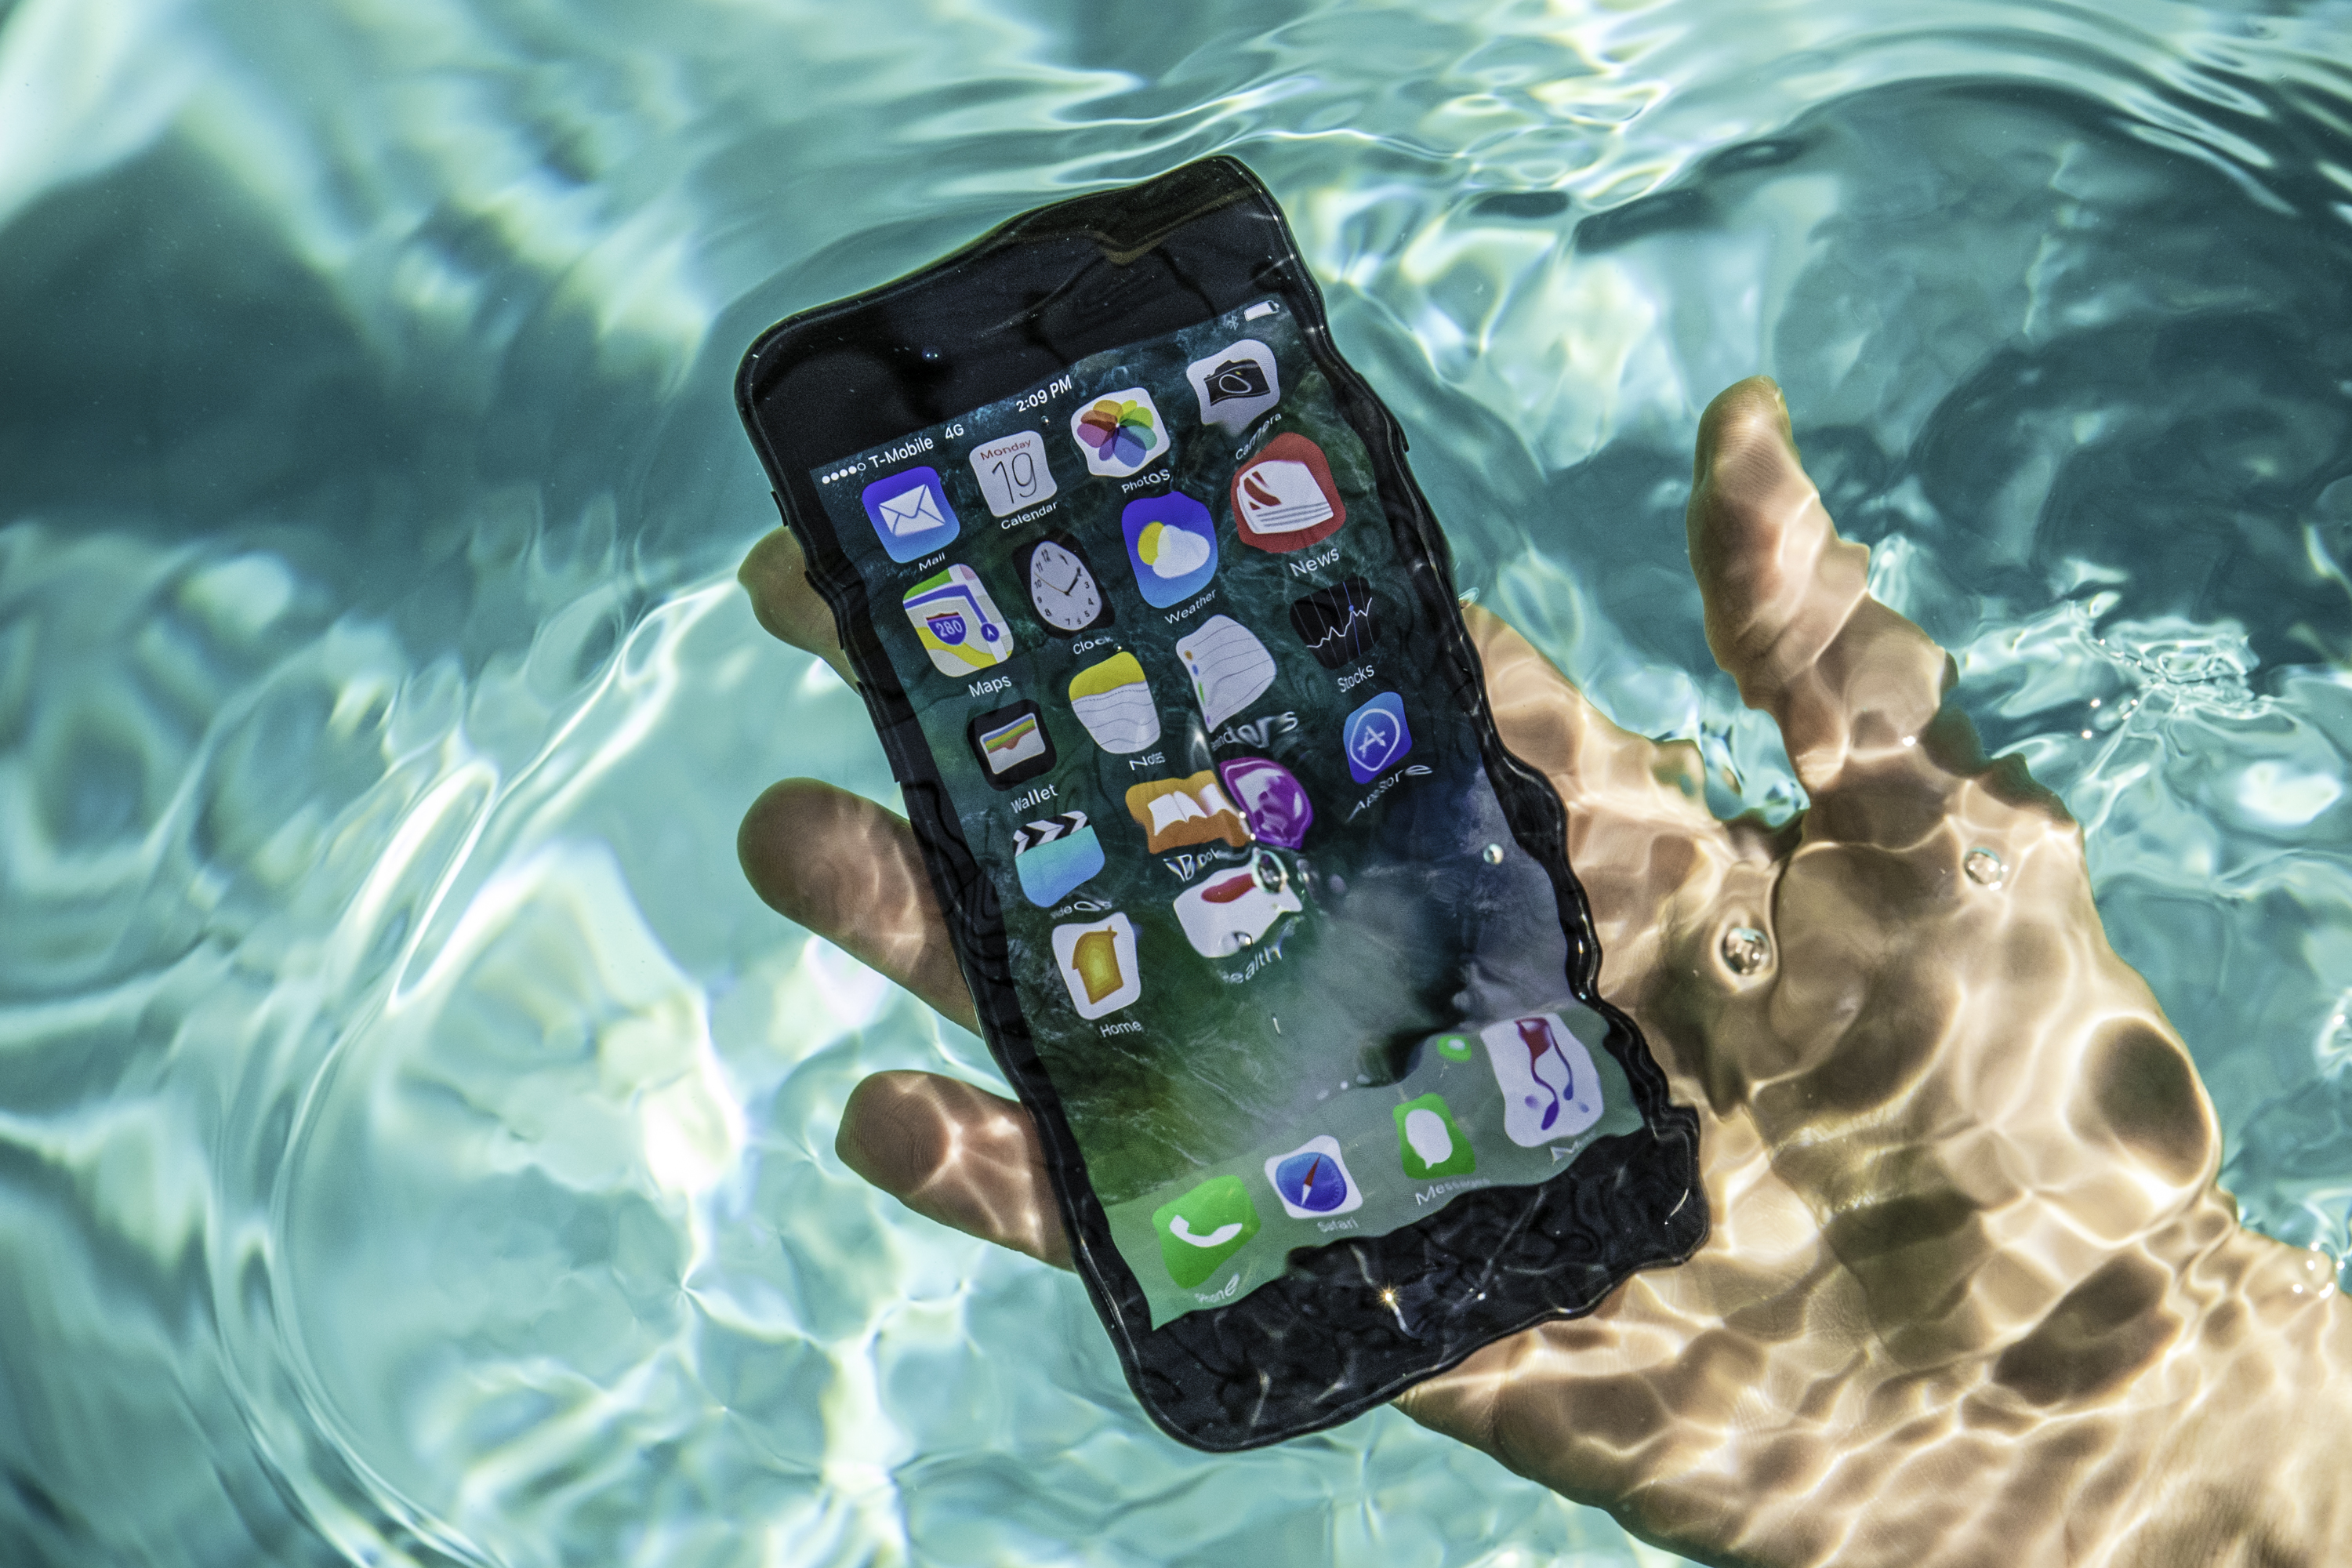 This application will show you how water safe your phone truly is